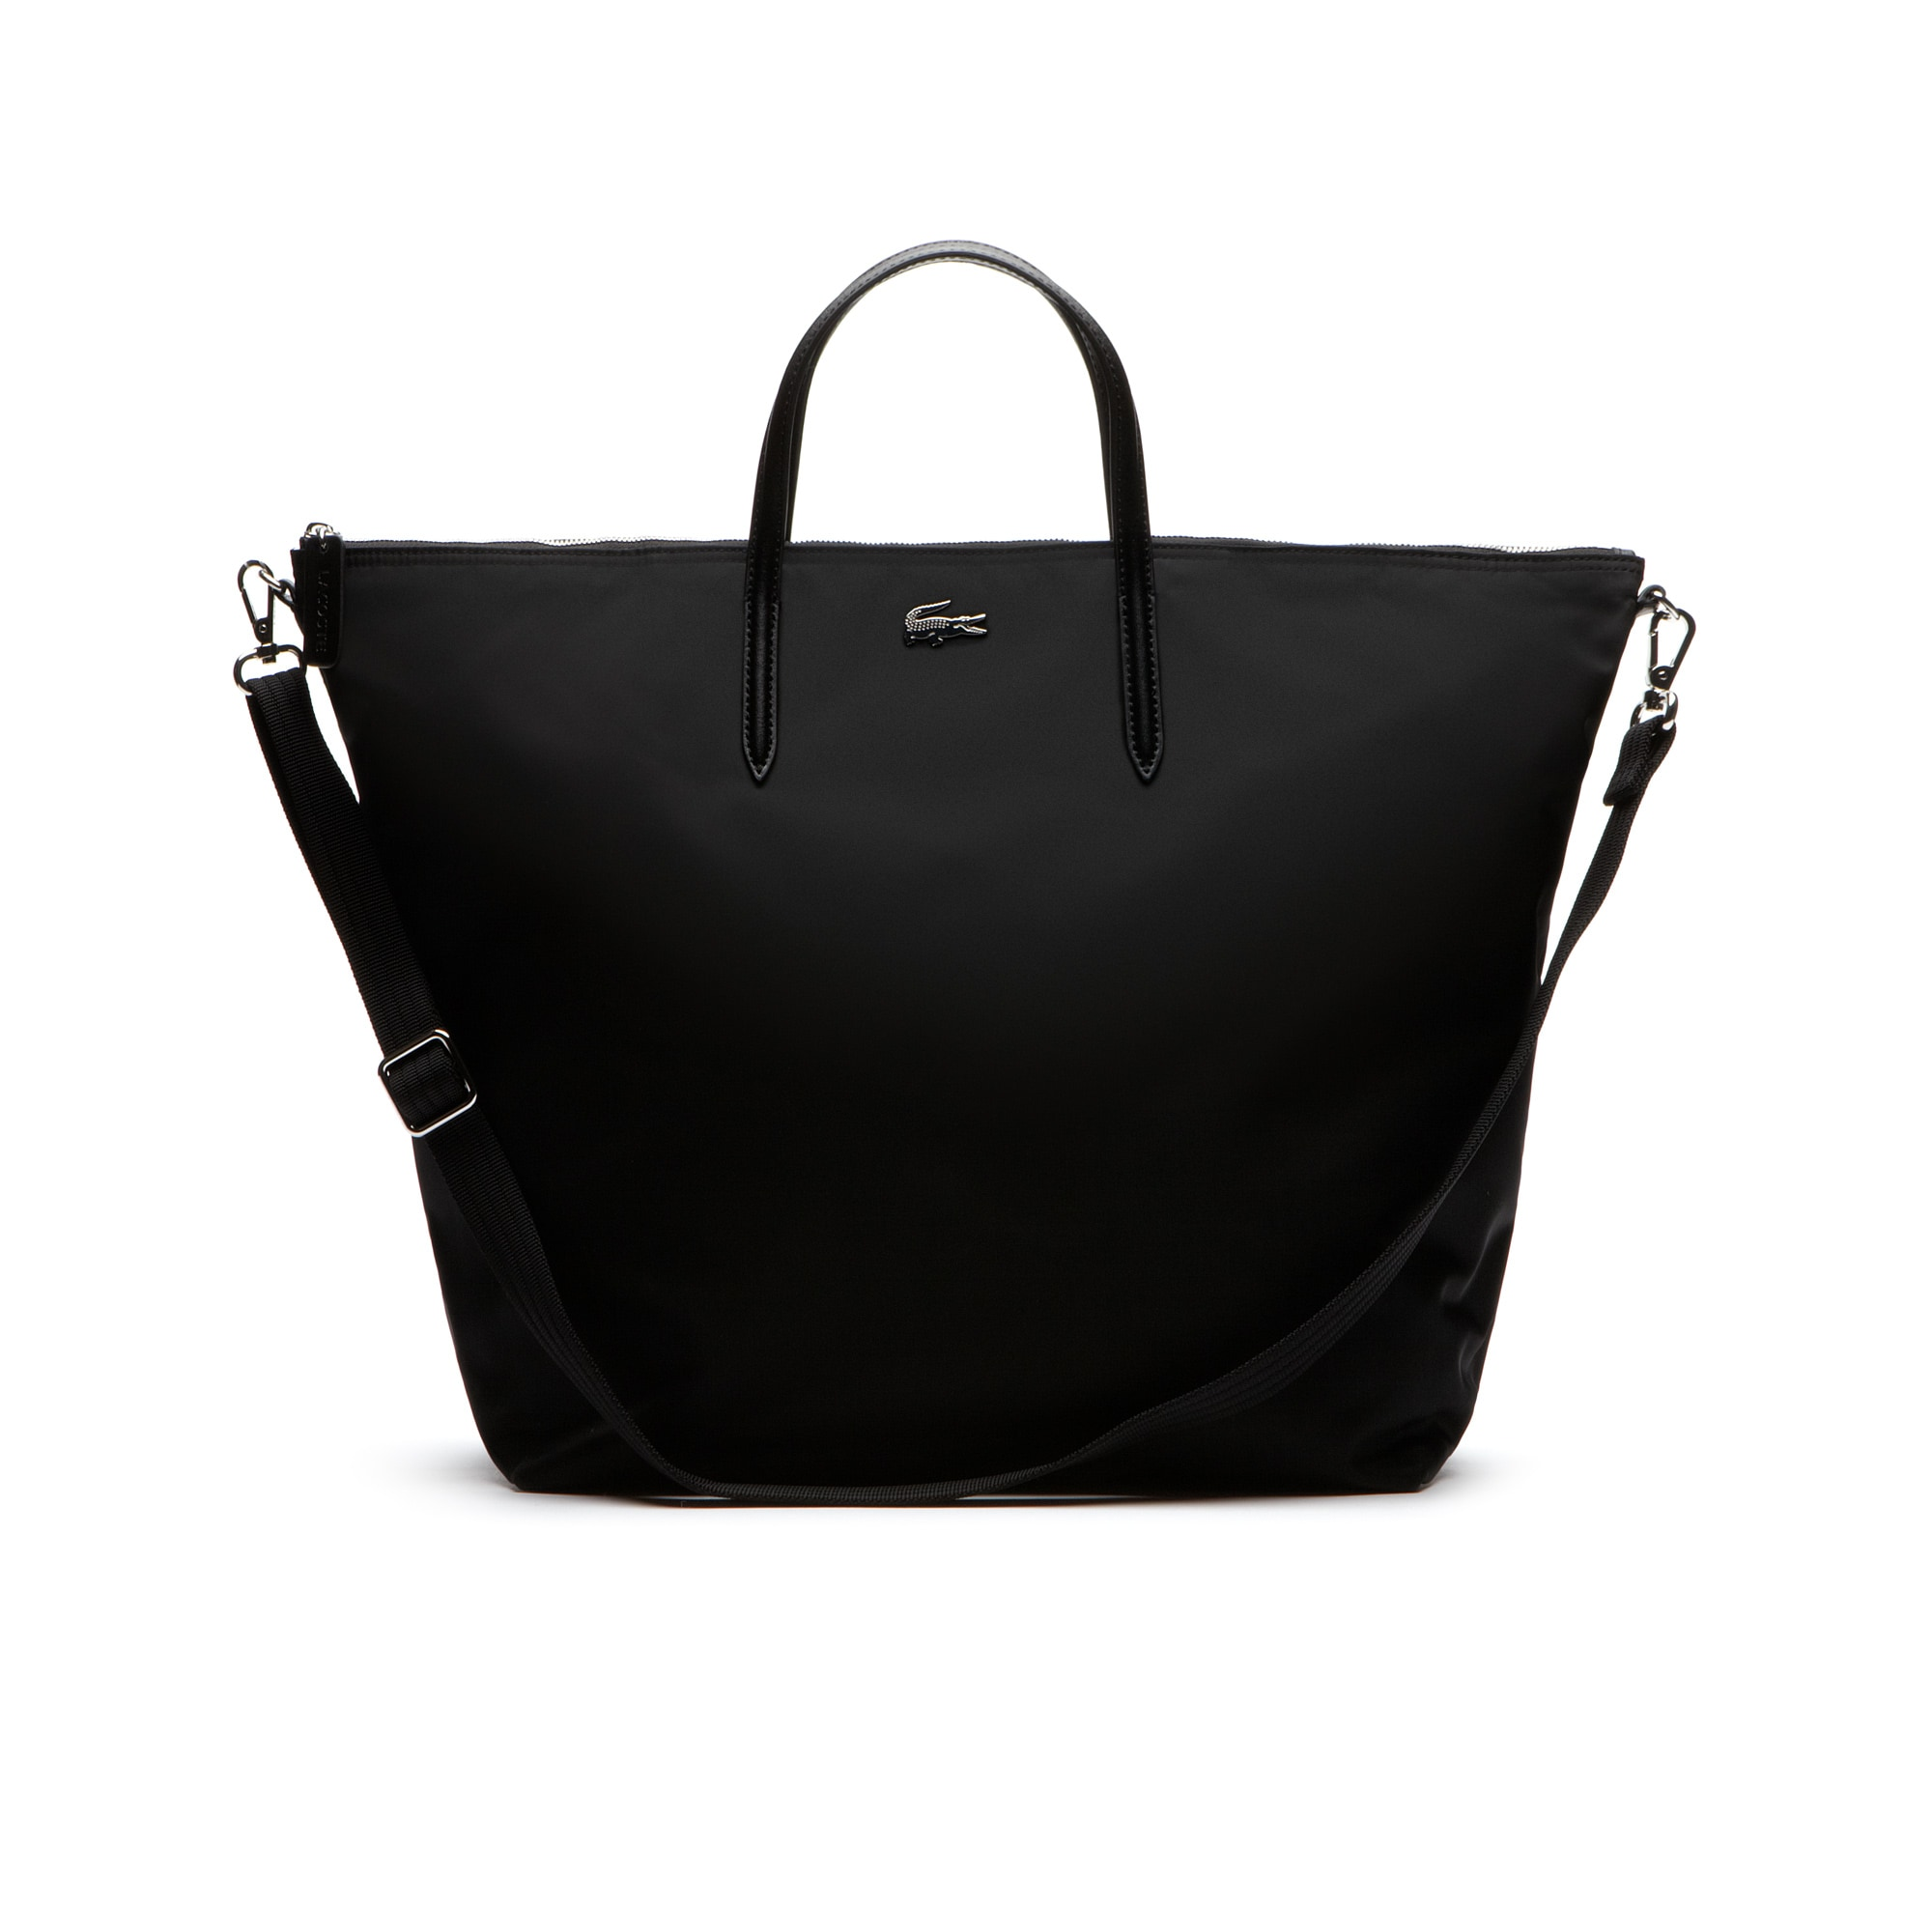 L.12.12 CONCEPT Nylon zippered travel tote bag | LACOSTE